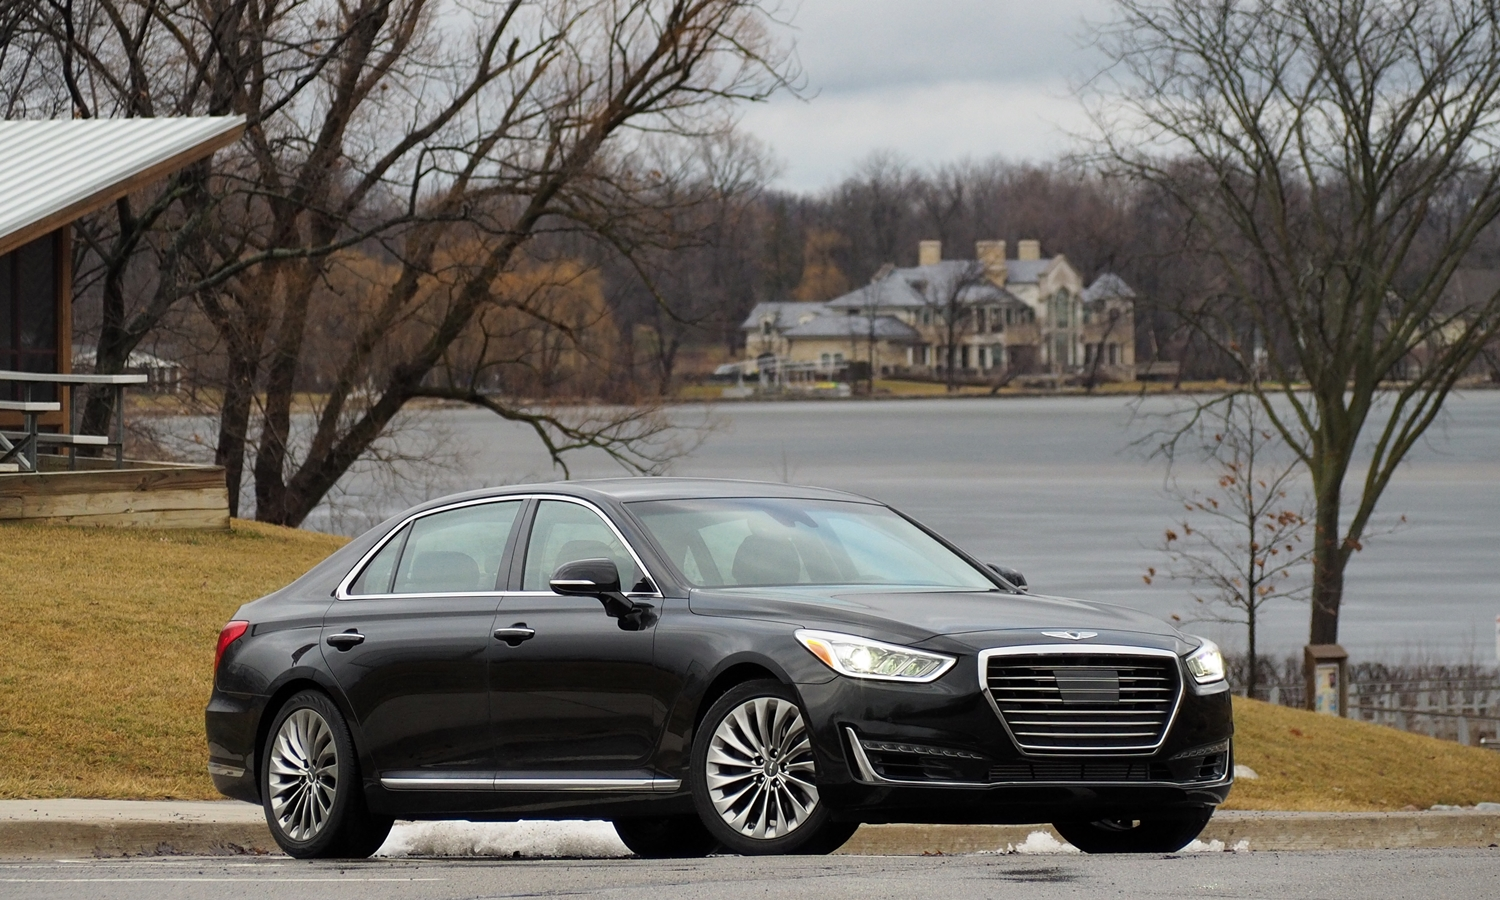 Genesis G90 Photos: 2017 Genesis G90 front quarter view